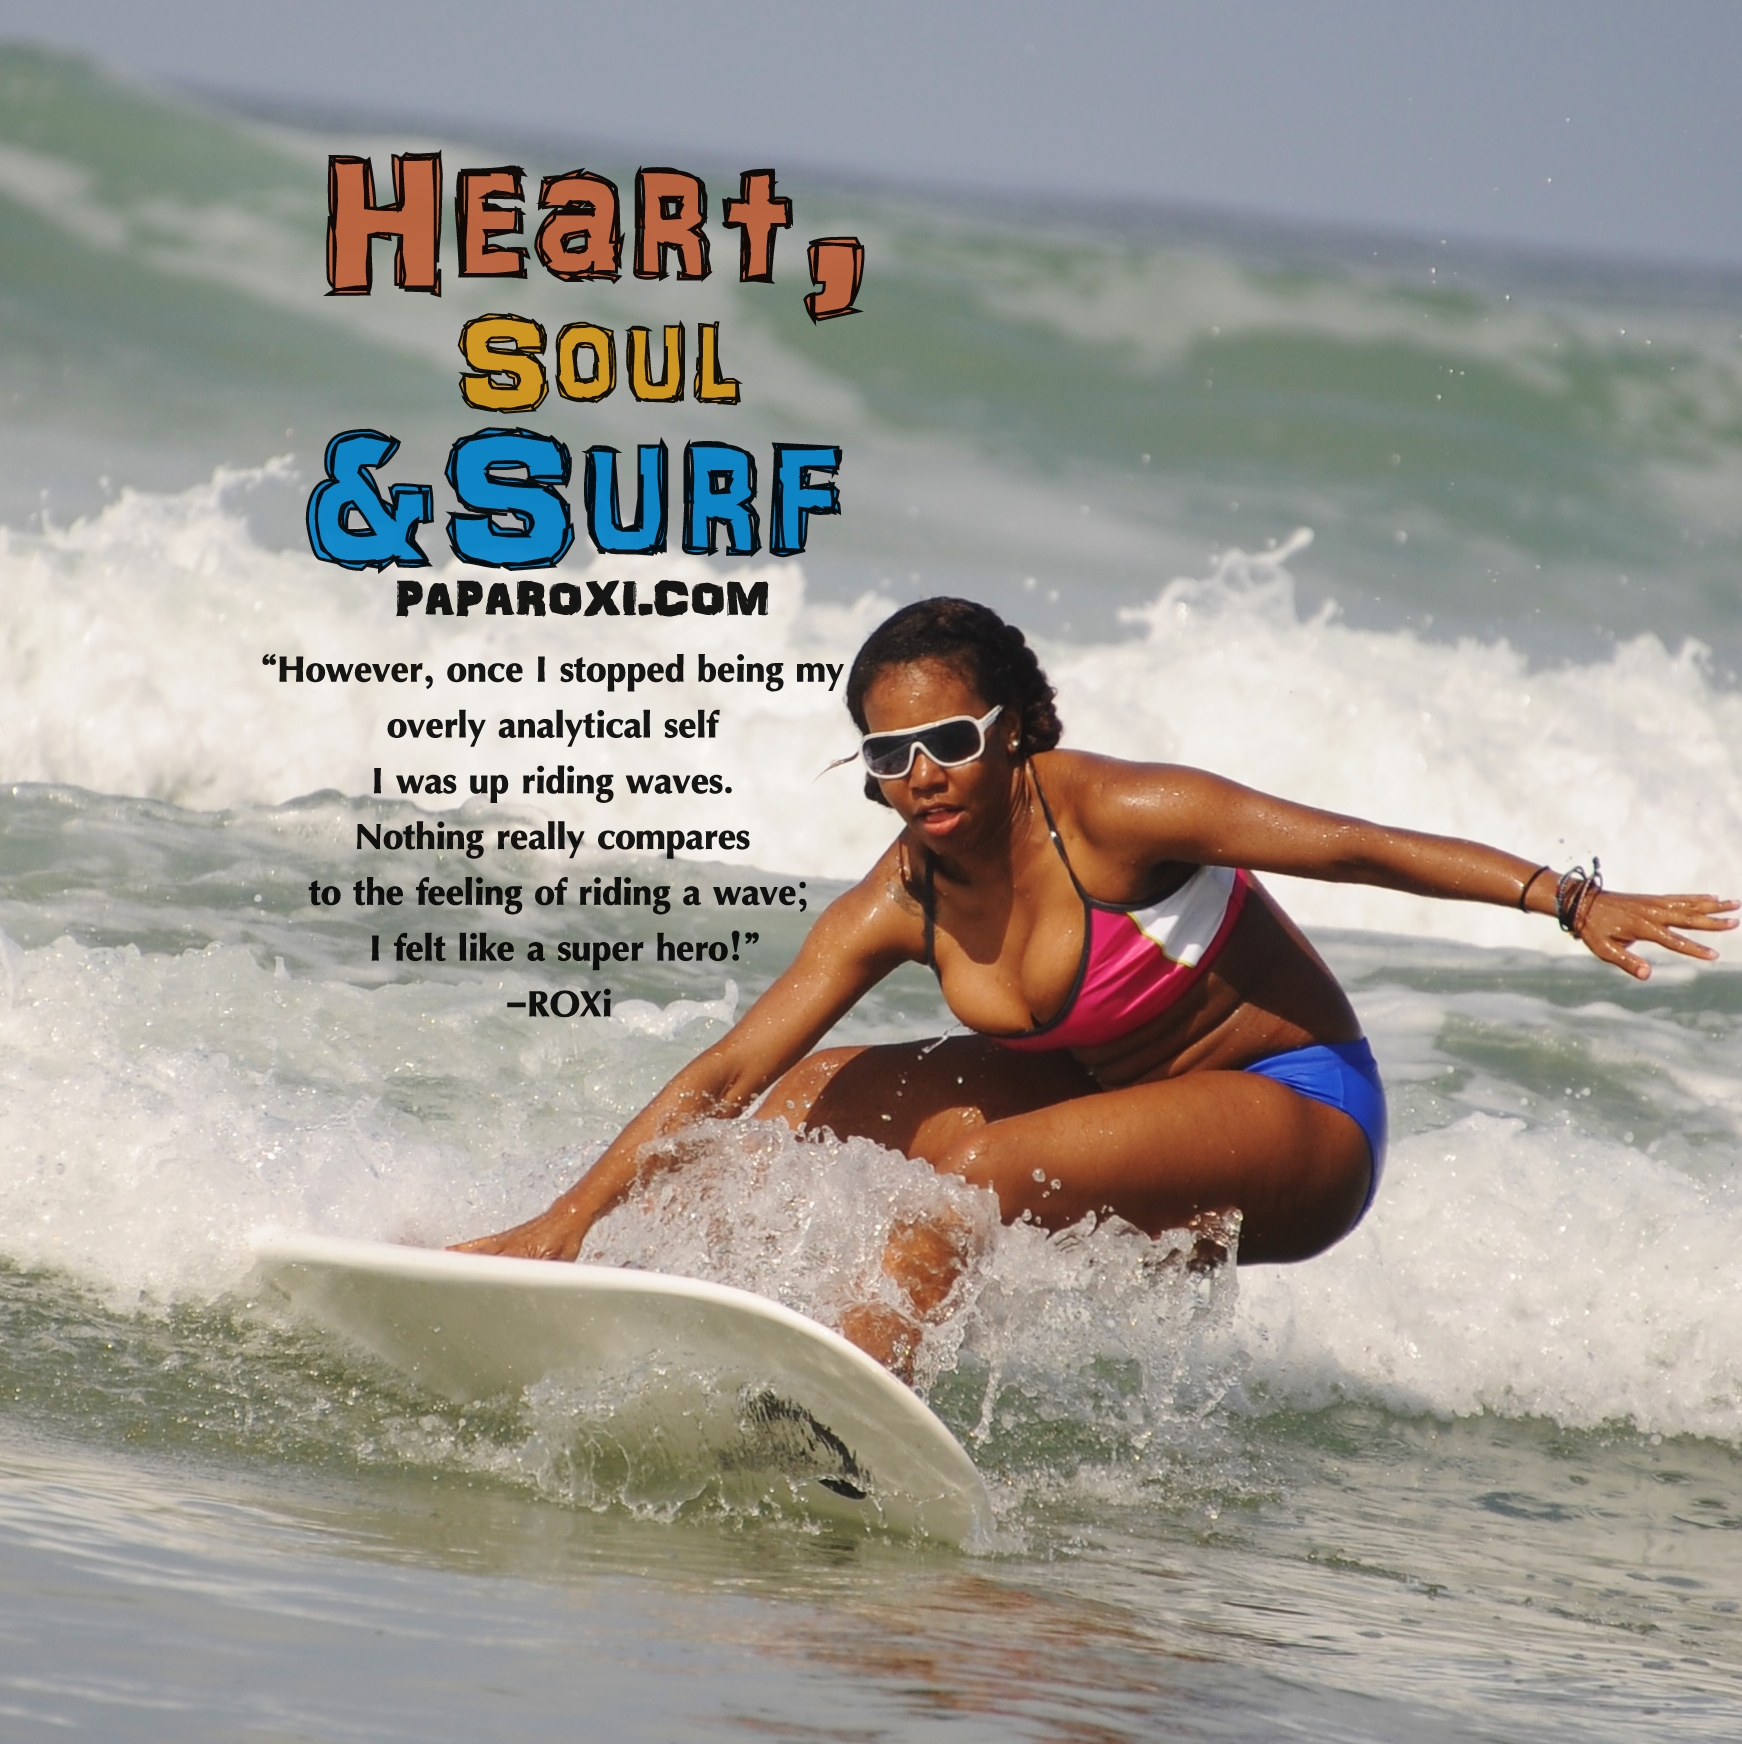 2_Costa Rica_surfing_blackgirl_healthyliving_paparoxi.jpg